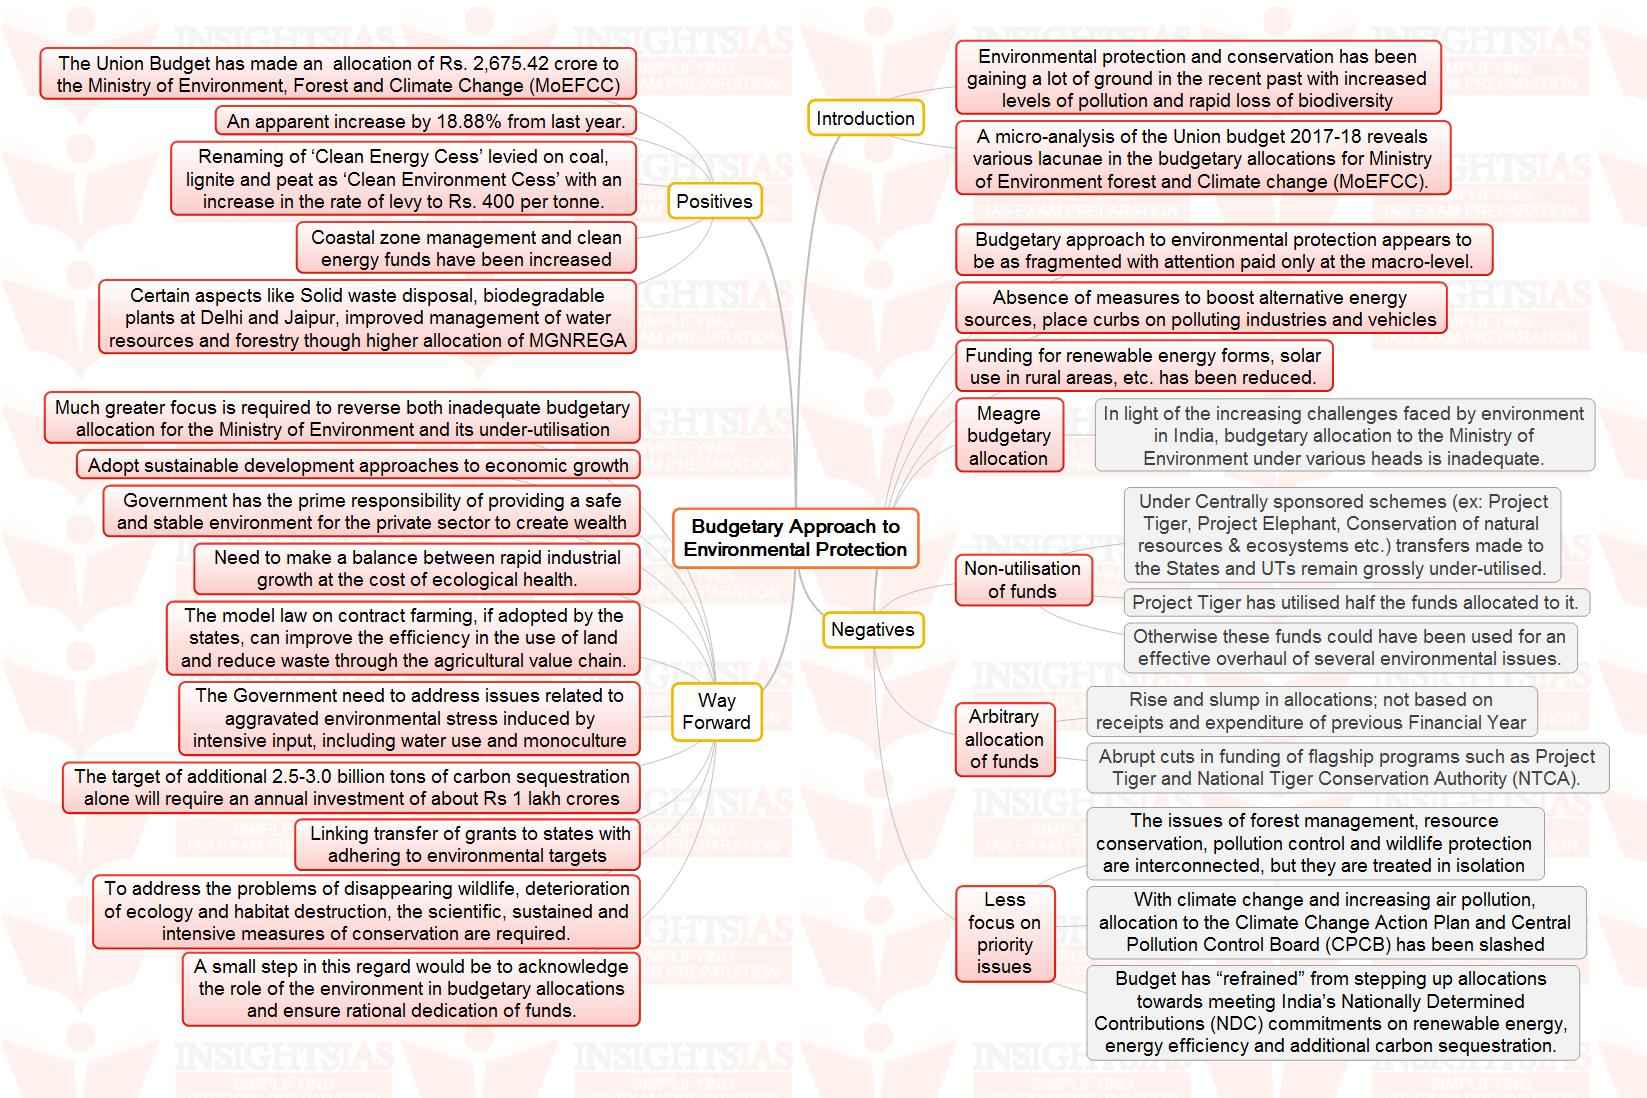 insights mindmaps political funding in and budgetary insights mindmaps ldquopolitical funding in rdquo and ldquobudgetary approach to environmental protectionrdquo